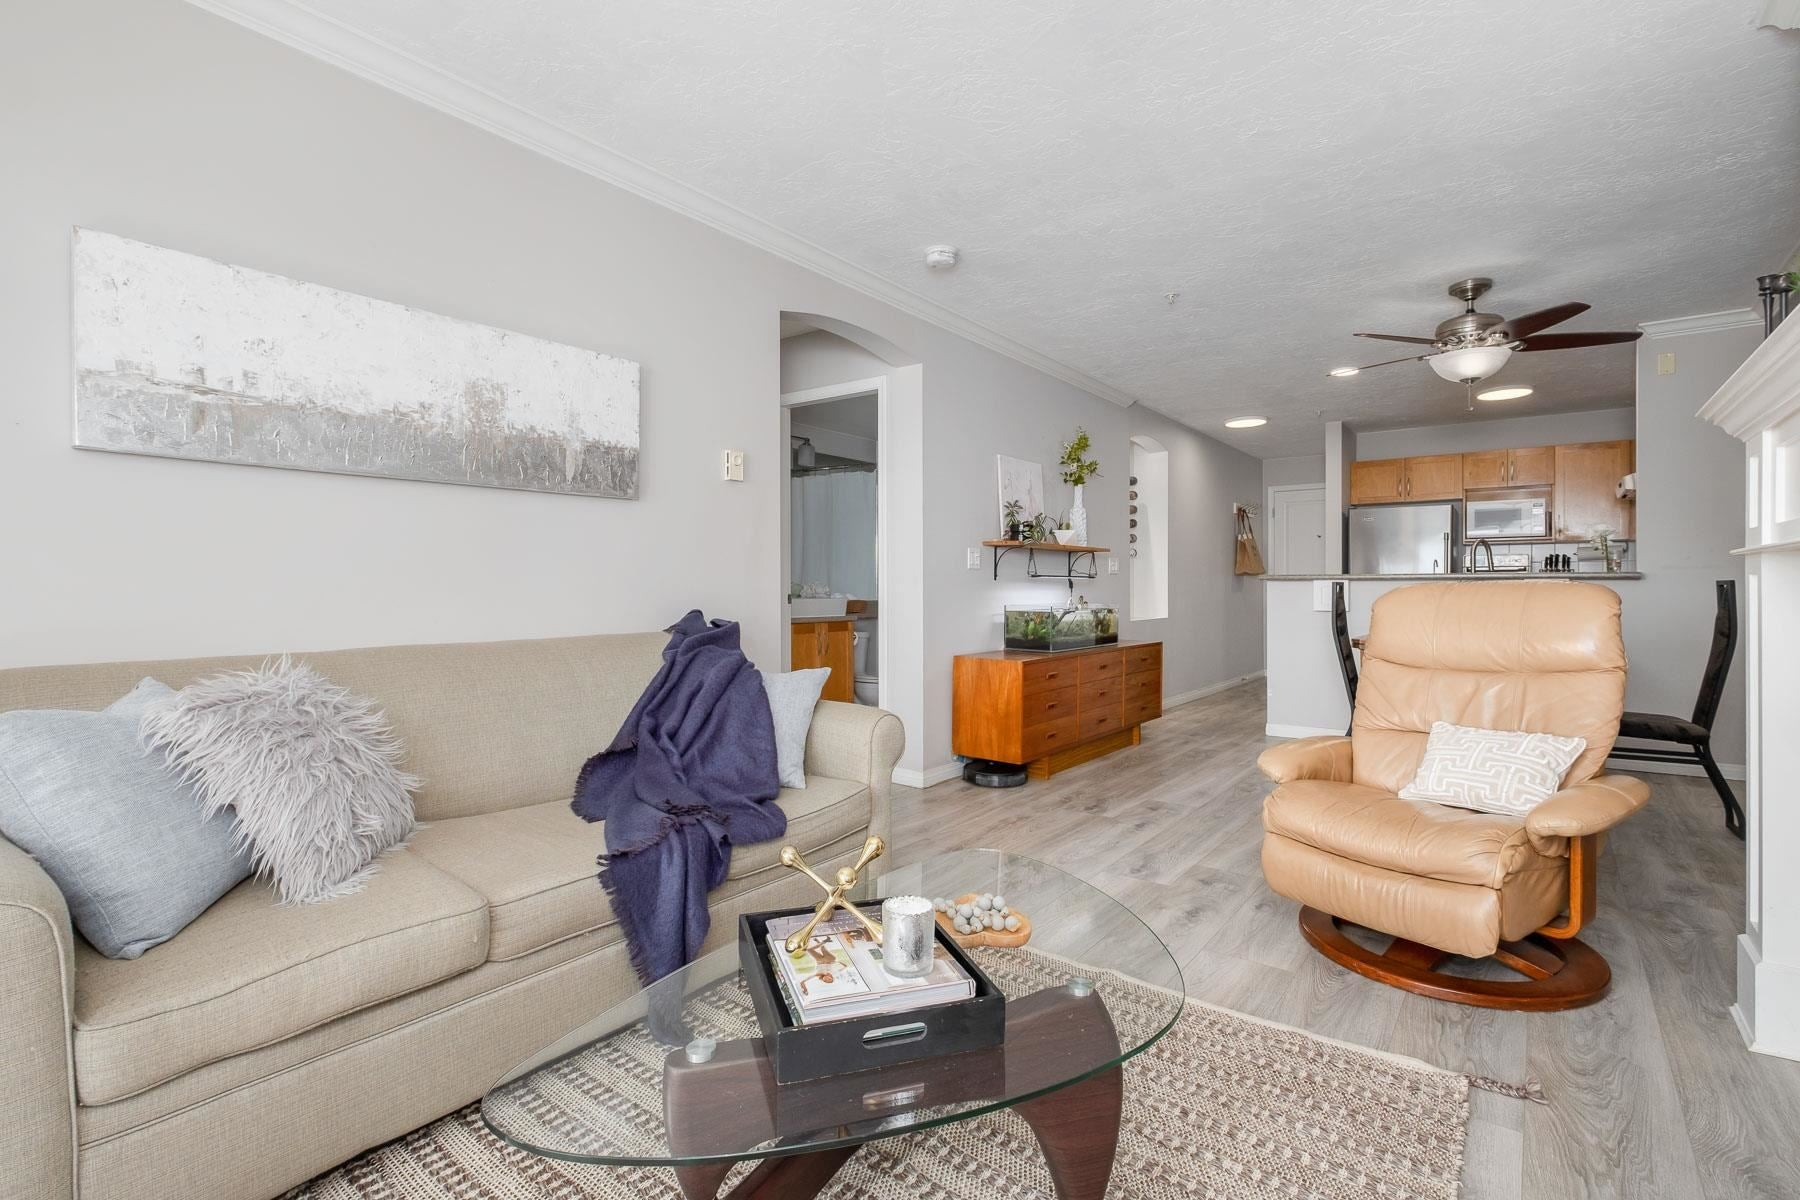 205 333 E 1ST STREET - Lower Lonsdale Apartment/Condo for sale, 1 Bedroom (R2618010) - #12